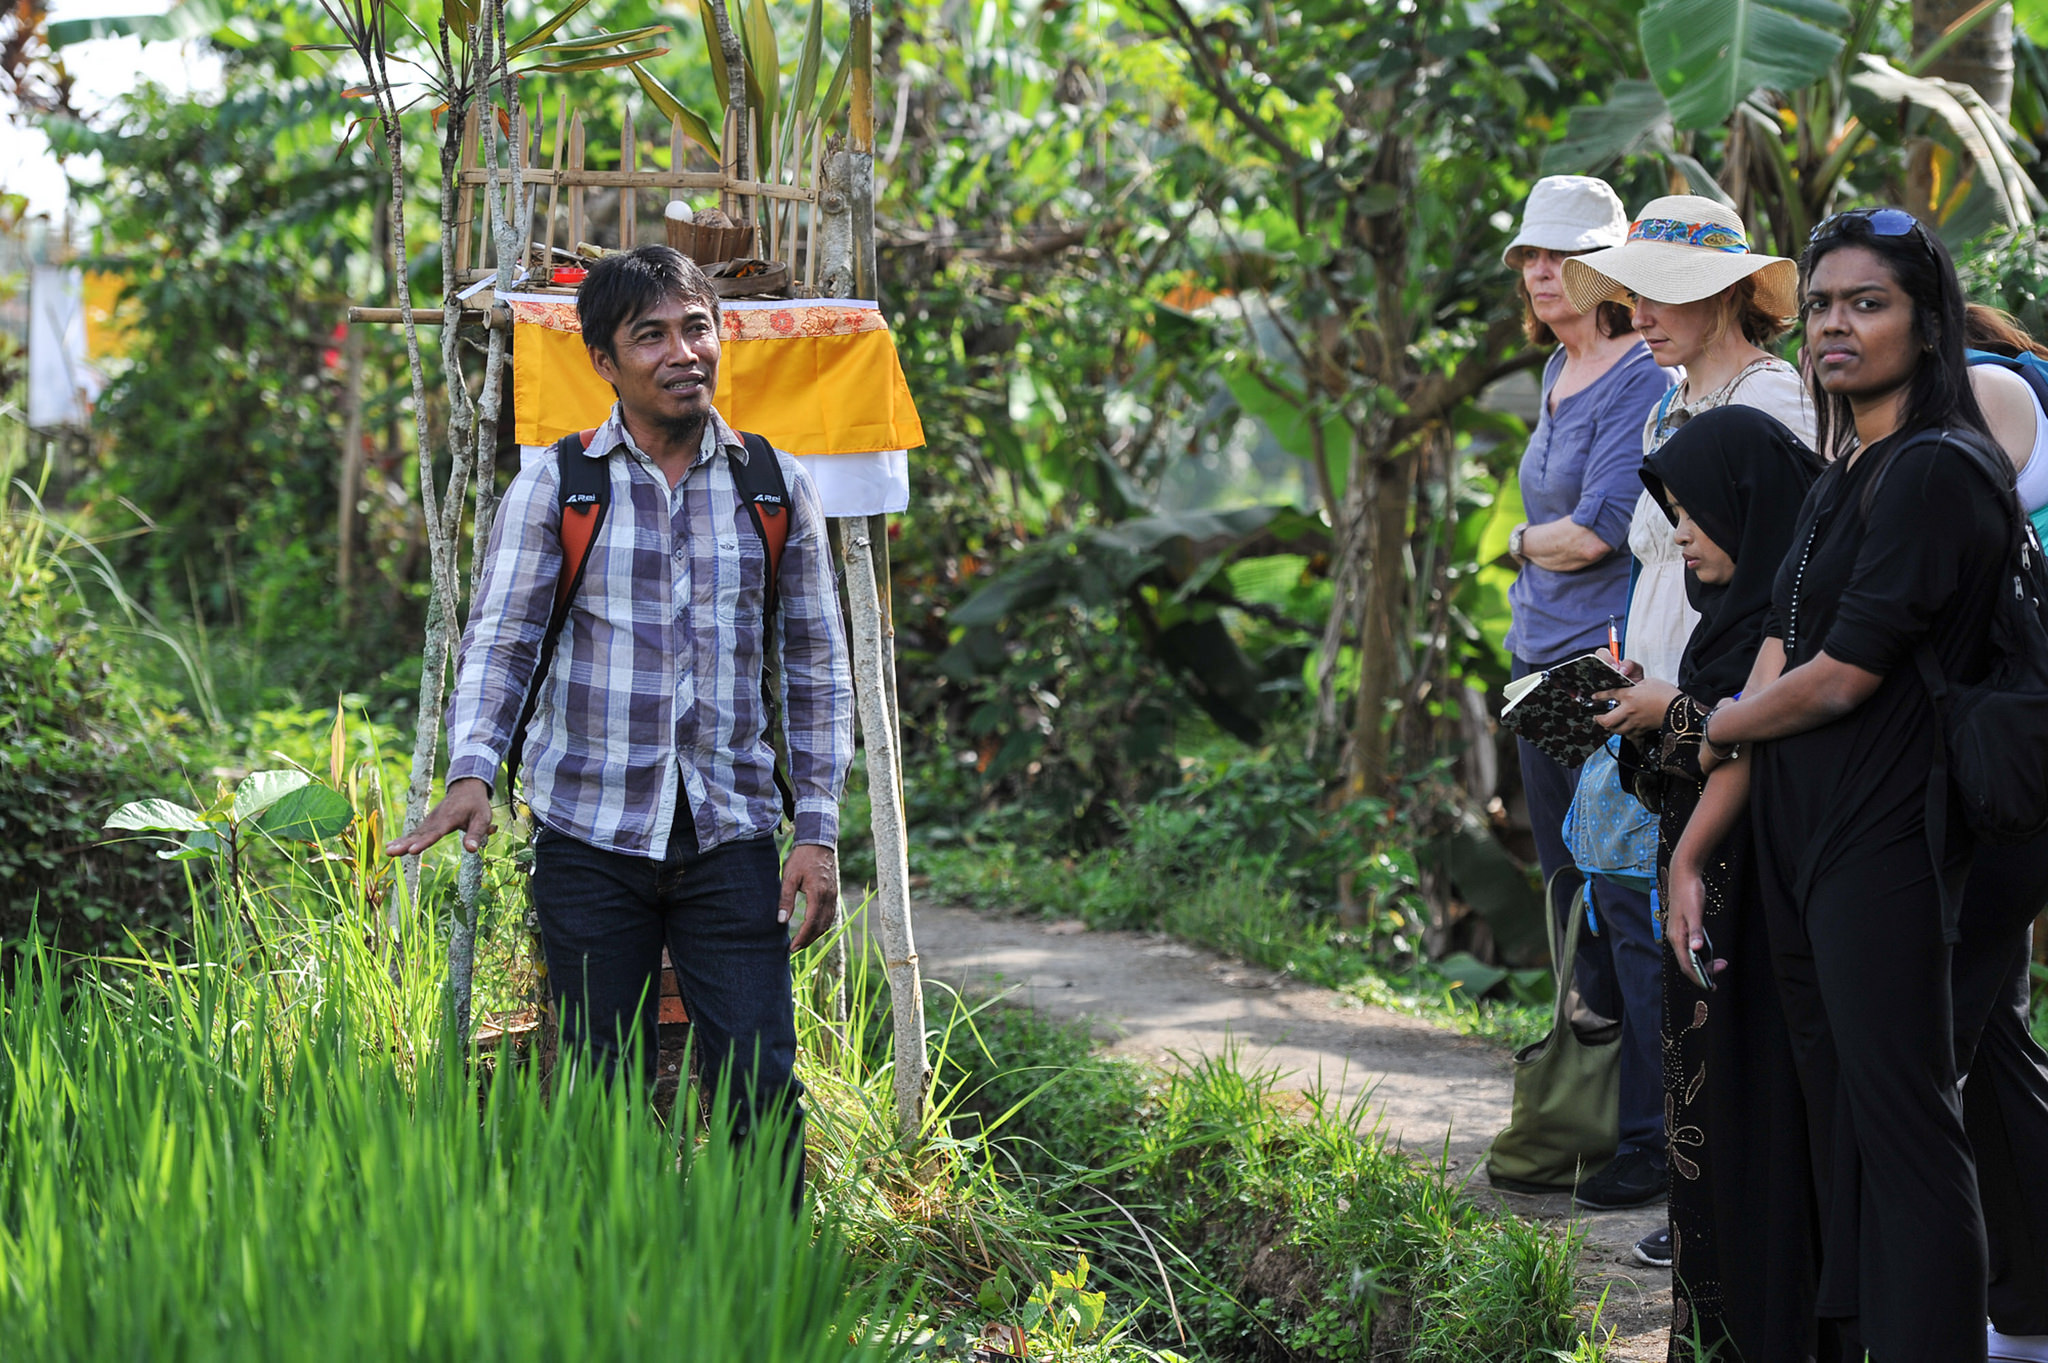 Ubud Writers & Readers Festival    Tour Guide Westie takes us for a walk, Jalan Jalan, through the rice fields, points out the local herbs and tells us how they are used for both cooking and healing. Image Credit: Matt Oldfield. Jalan Jalan.